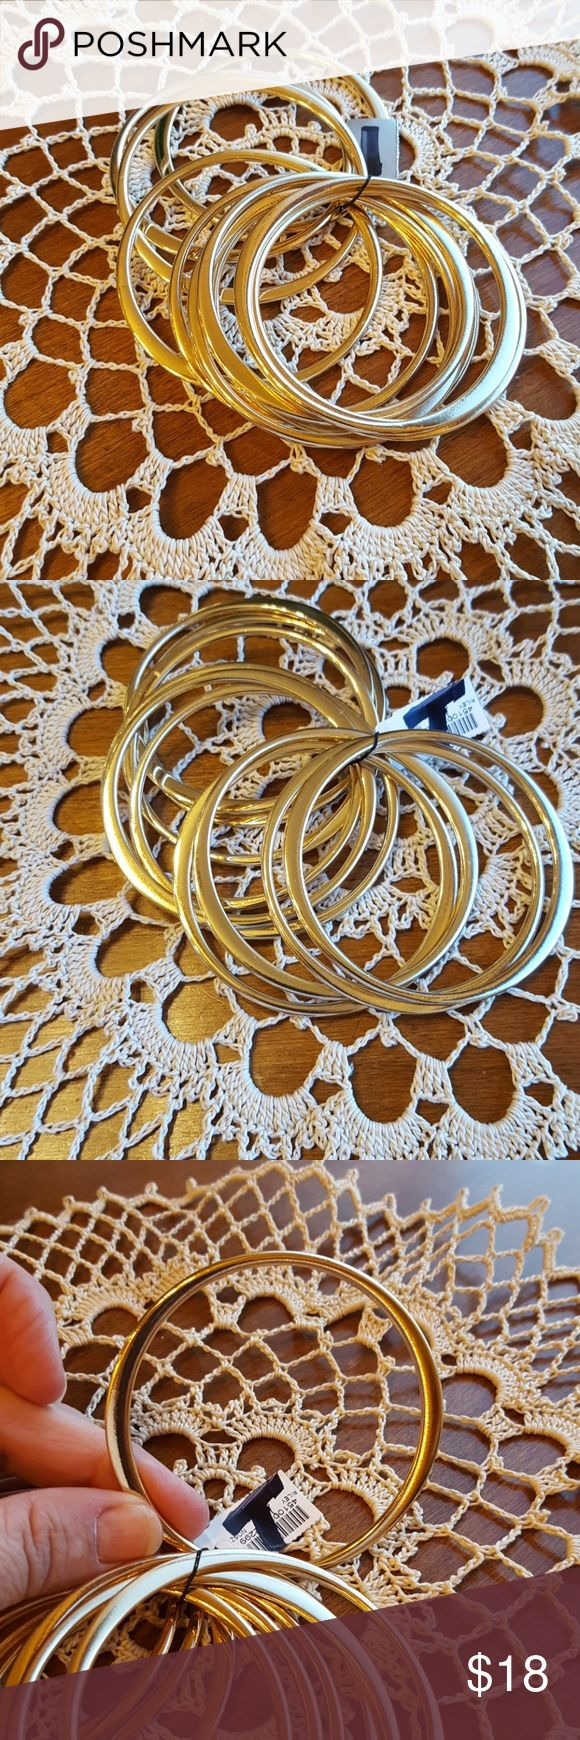 Chico's gold bangle bracelets NWT Chico's set of 10 bangle bracelets. Reflect beautifully, thicker in some spots, thinner in others.  A cut above the typical bangle! Price/brand partially blacked out on tag. Talbots Jewelry Bracelets